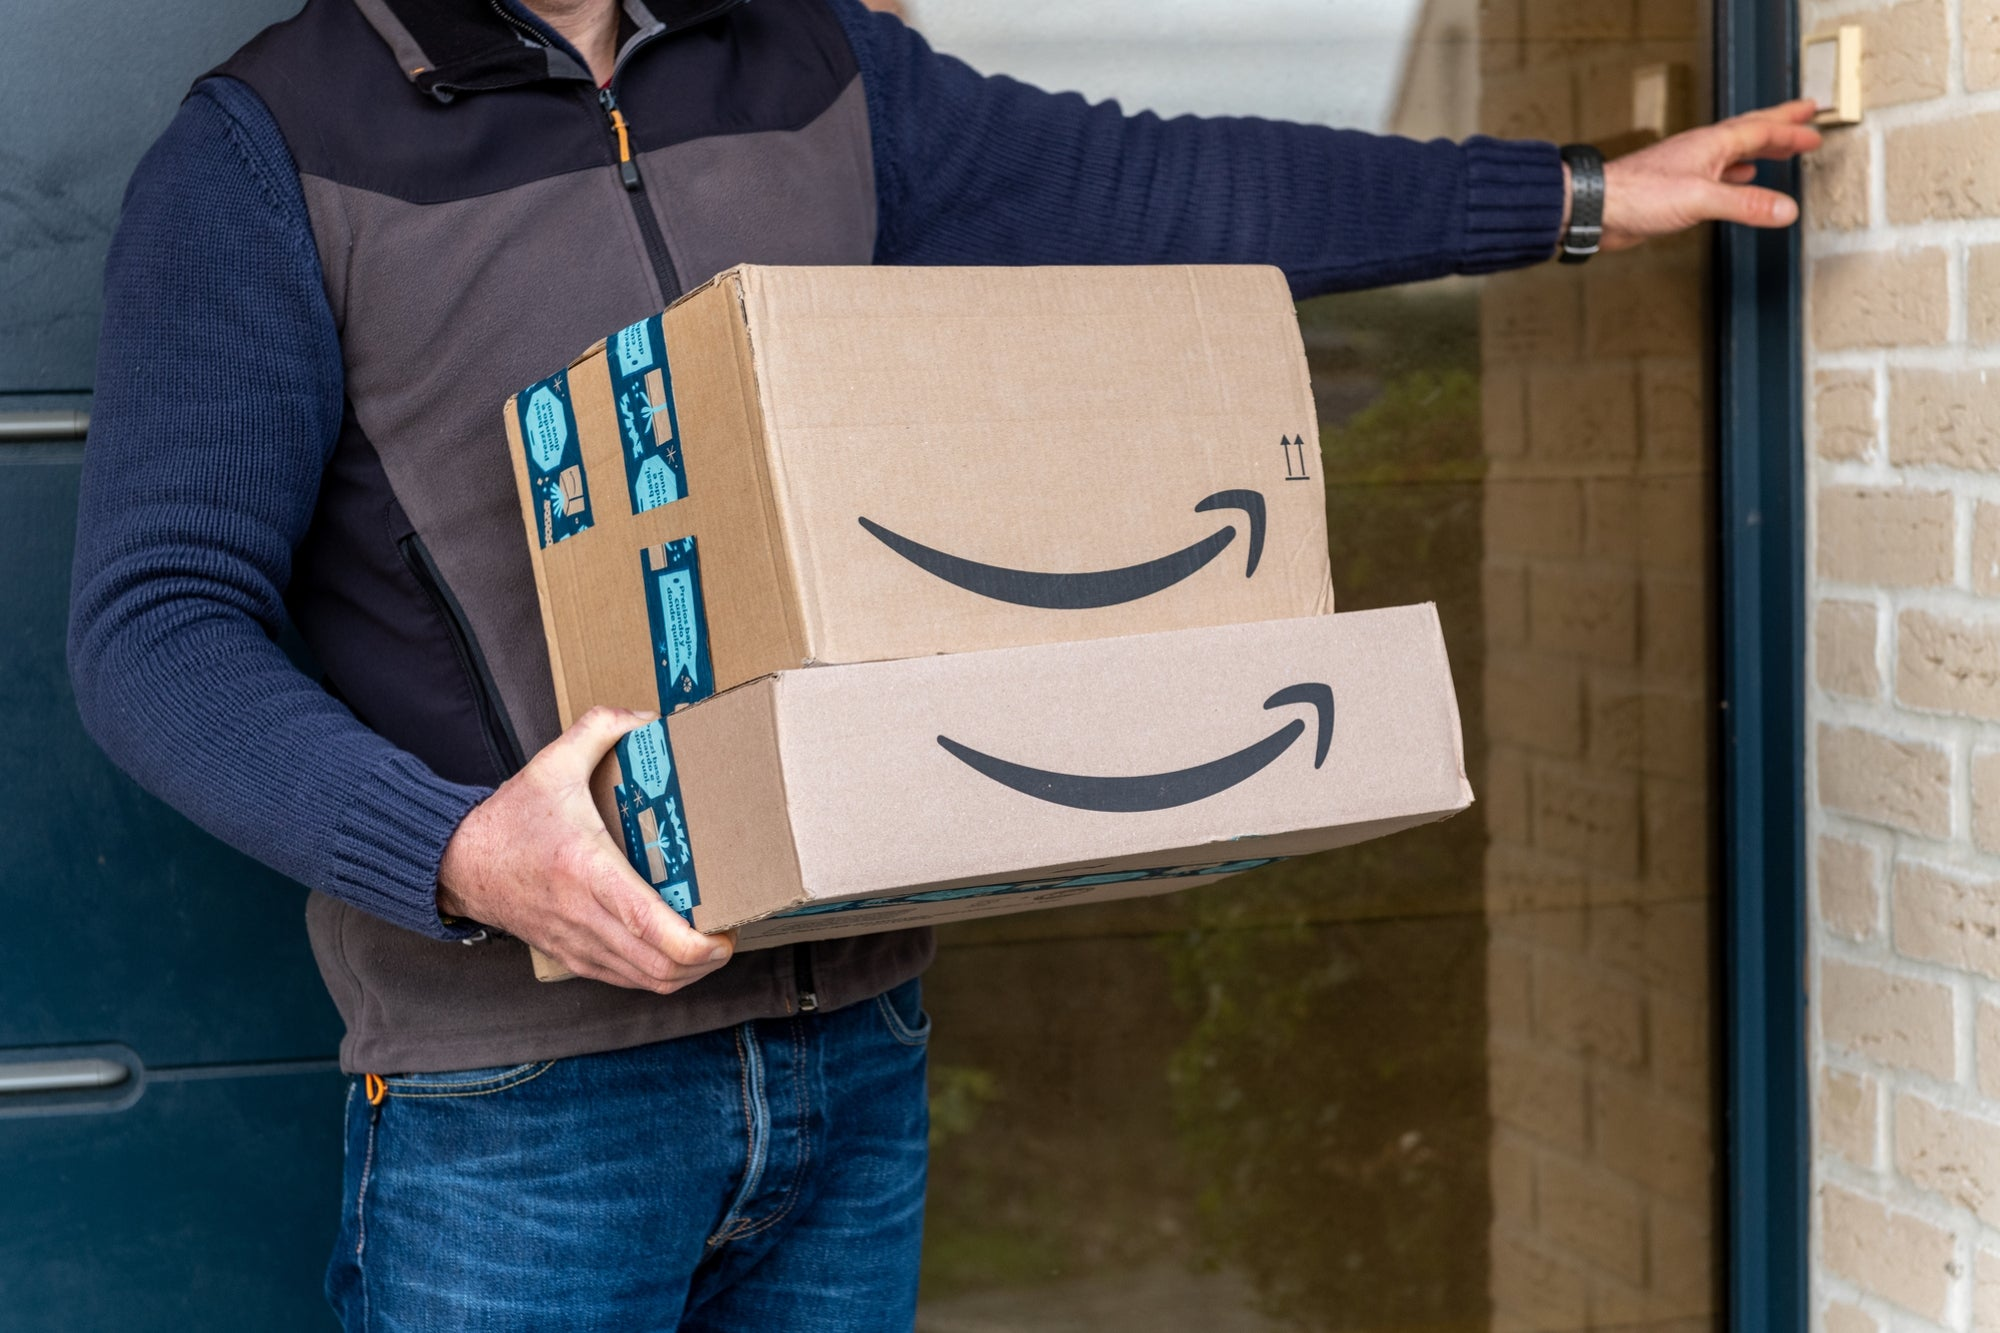 Amazon banned 600 Chinese brands on its platform and this is why